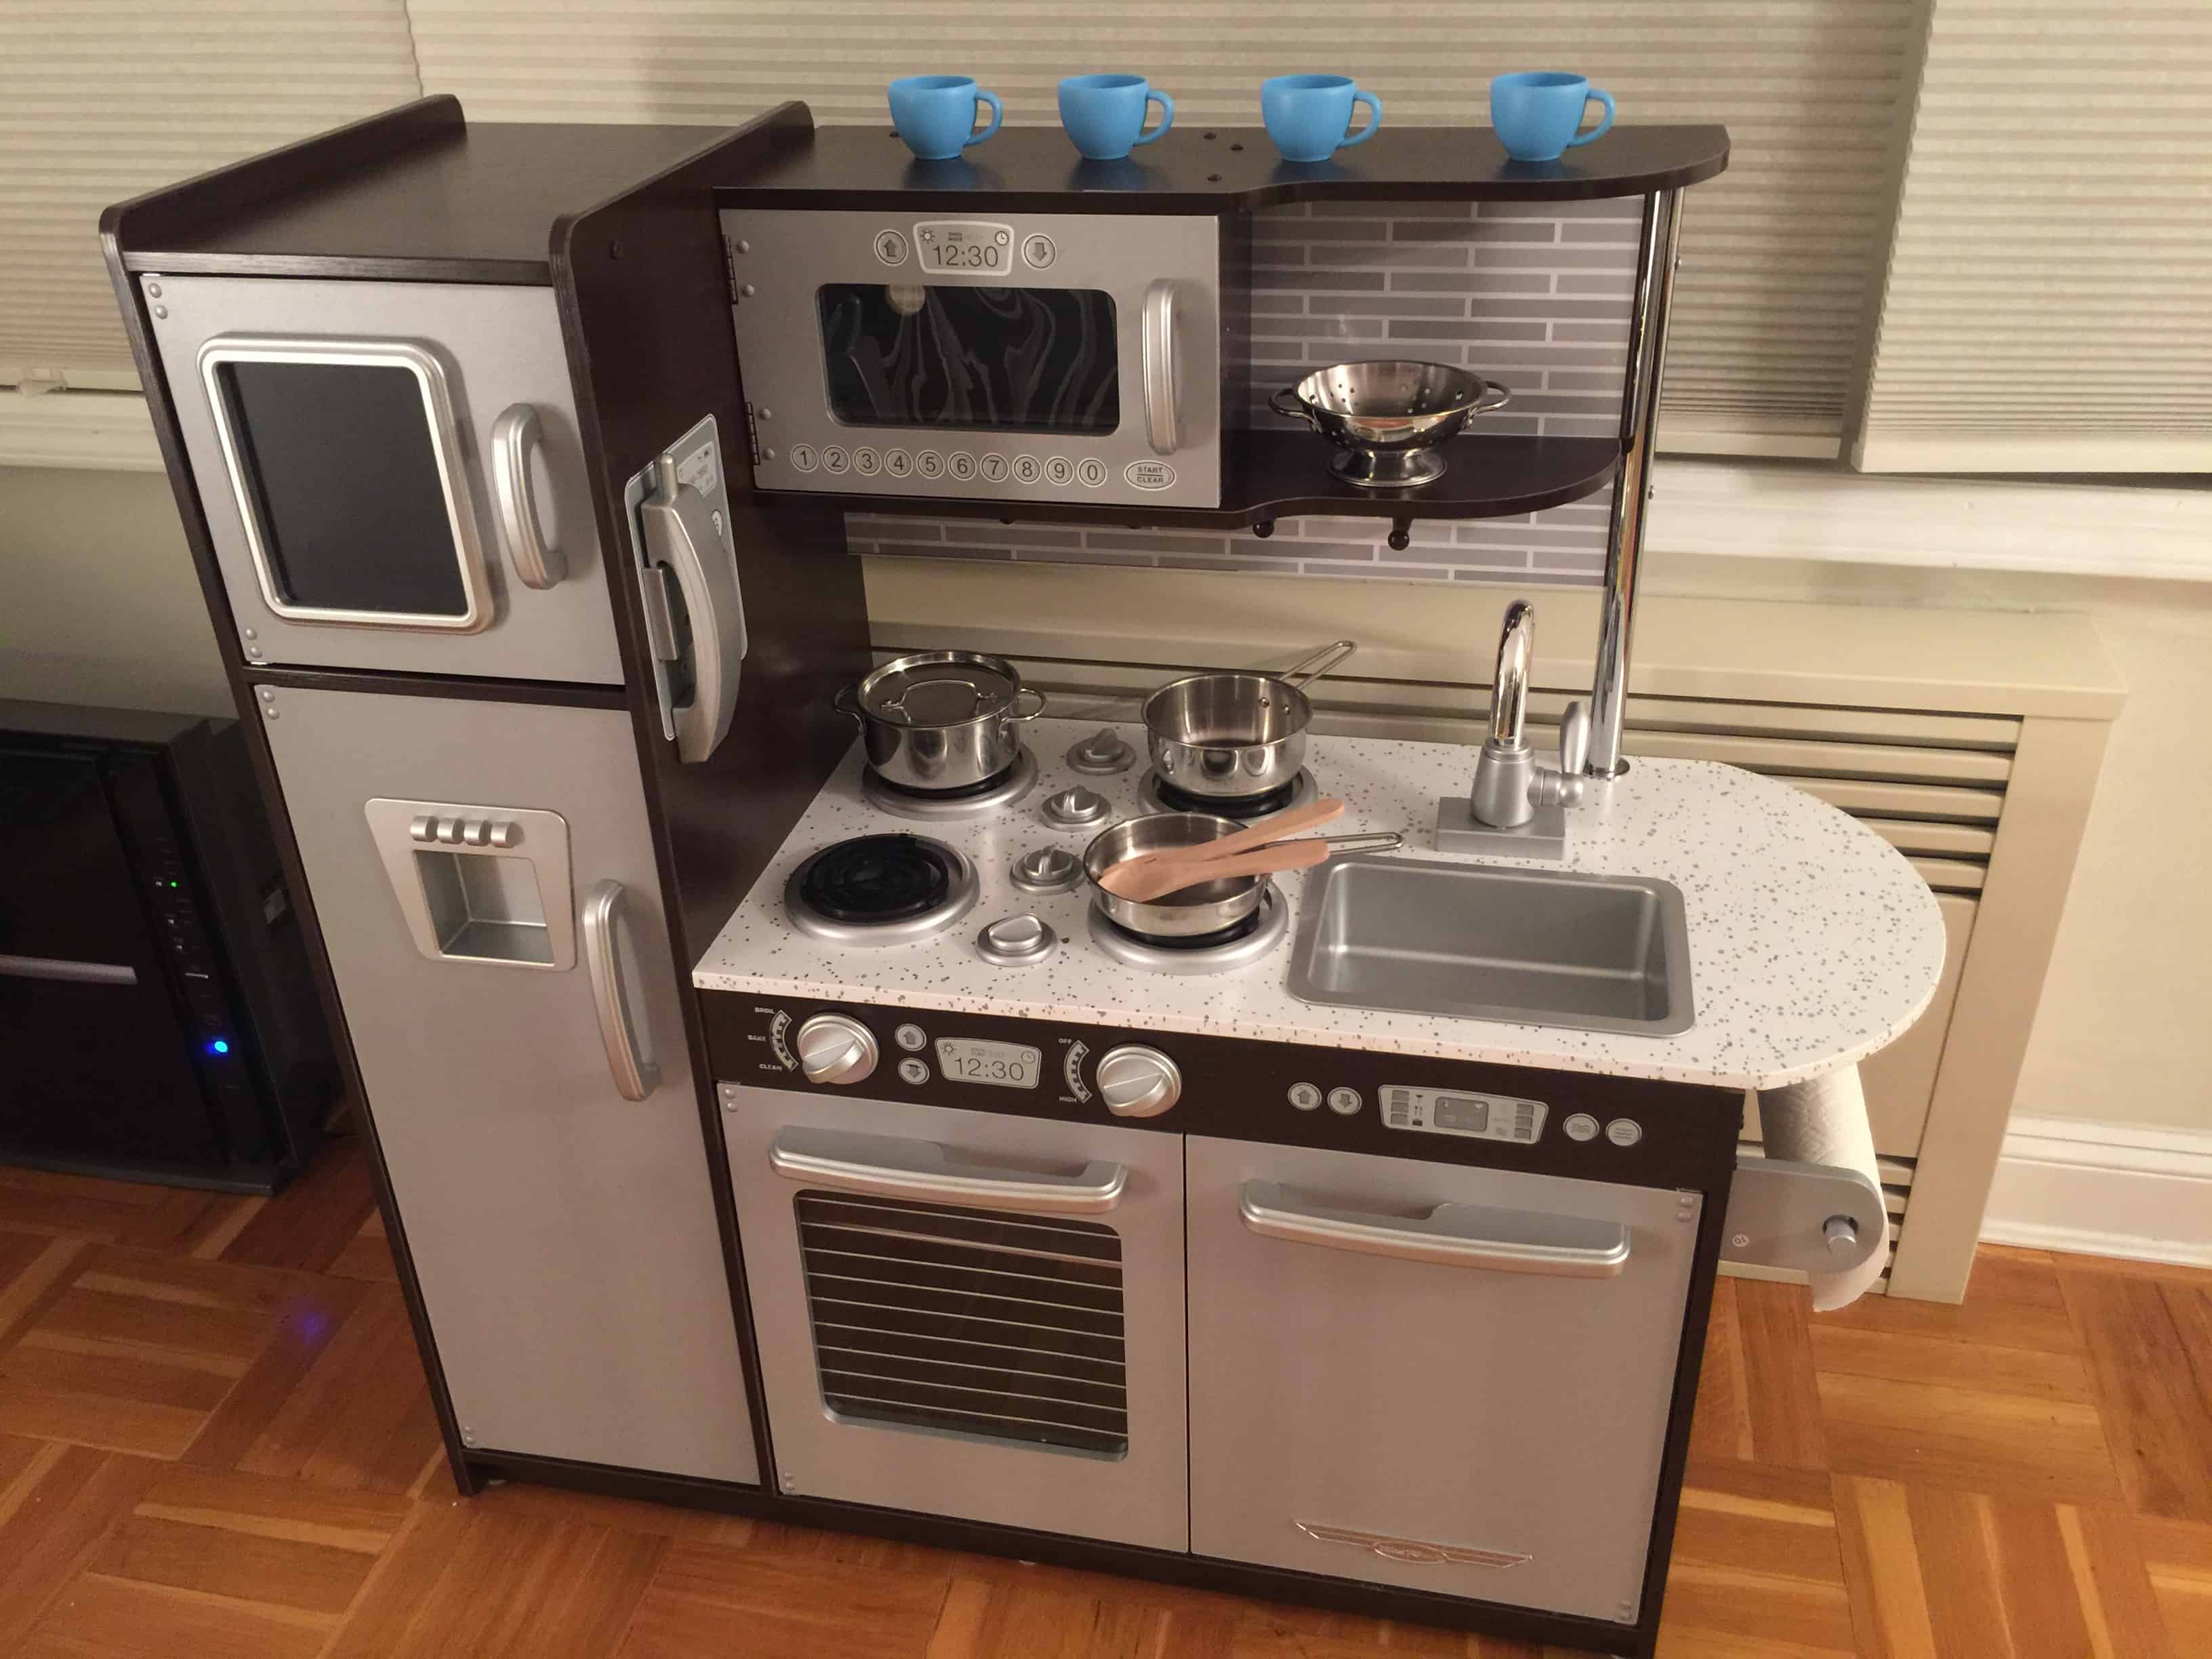 Kidkraft Kitchen kidkraft uptown espresso kitchen review: first impressions | mommy